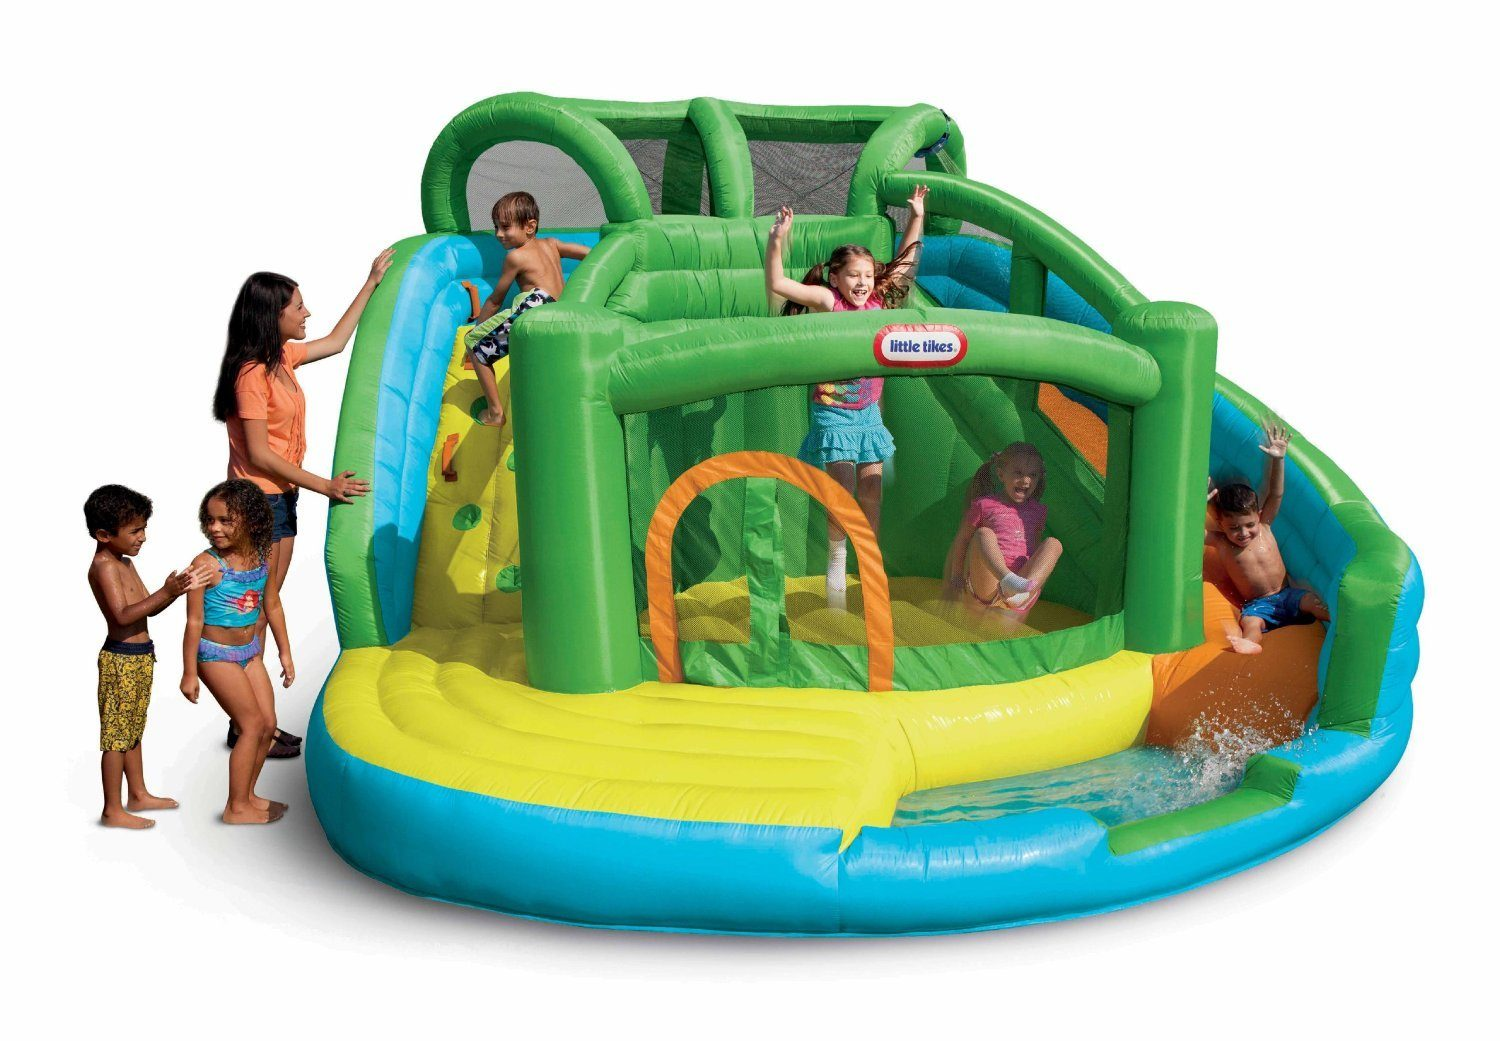 Little Tikes 2-in-1 Wet 'n Dry Inflatable Bouncer Only $199 With FREE Shipping (Reg. $599.99!!)!